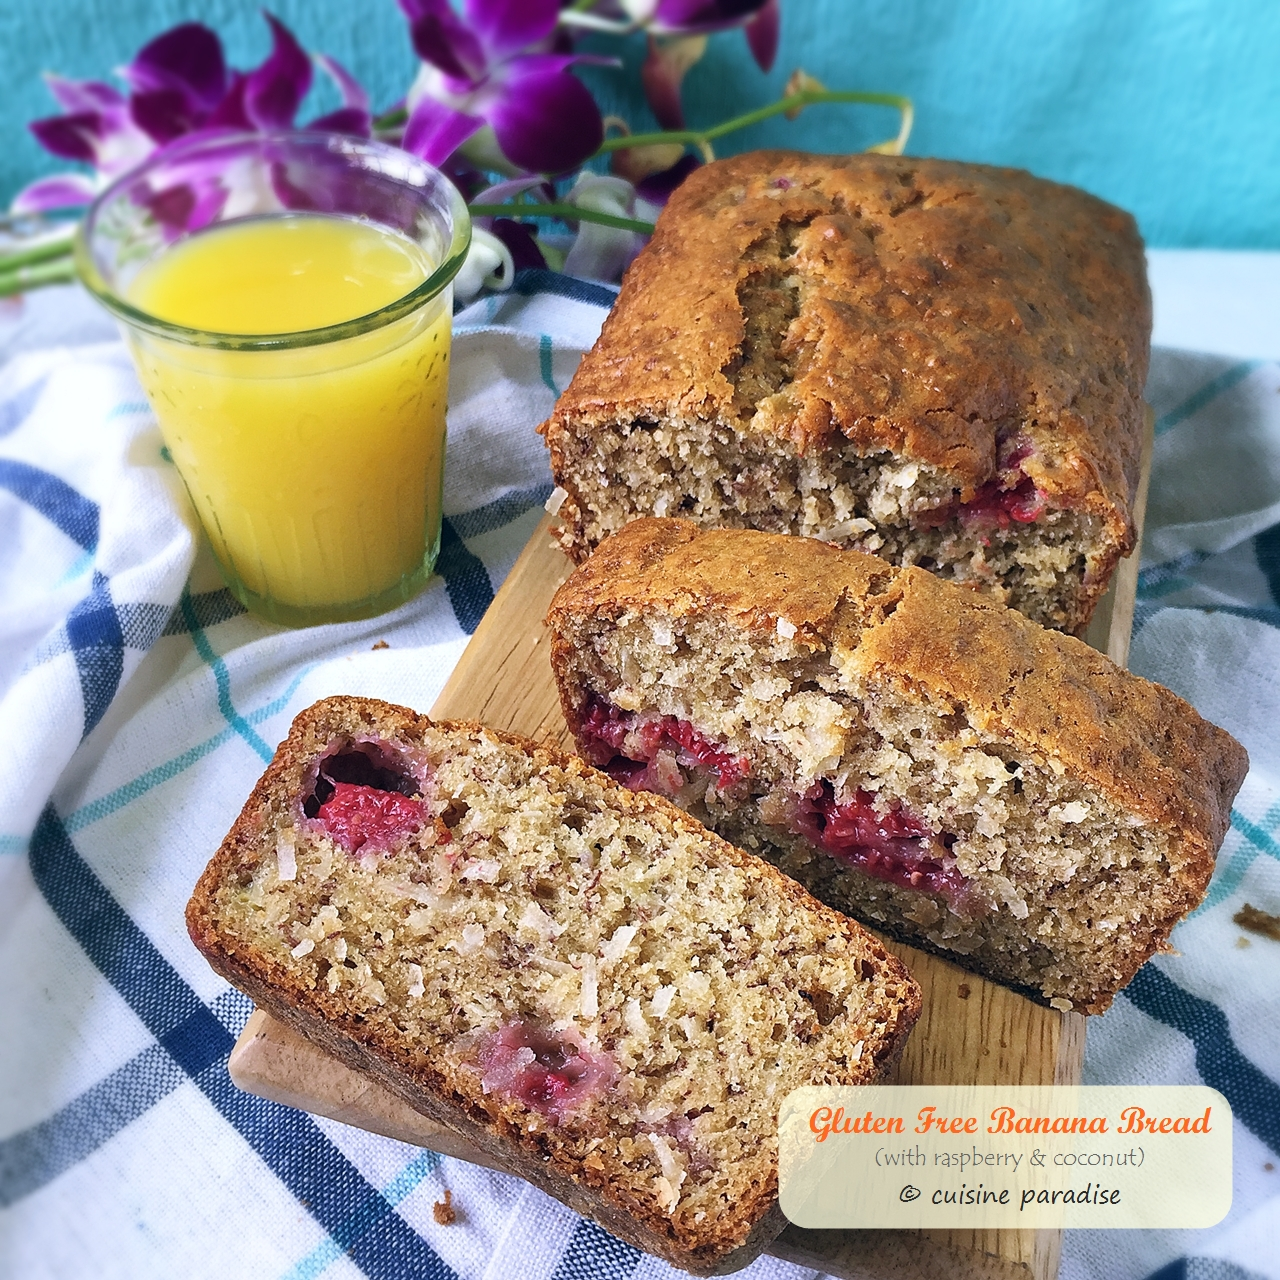 Cuisine paradise singapore food blog recipes reviews and travel recently i have an obsession for banana bread and i have being trying different combination of ingredients and methods to get the best recipe for my family forumfinder Choice Image